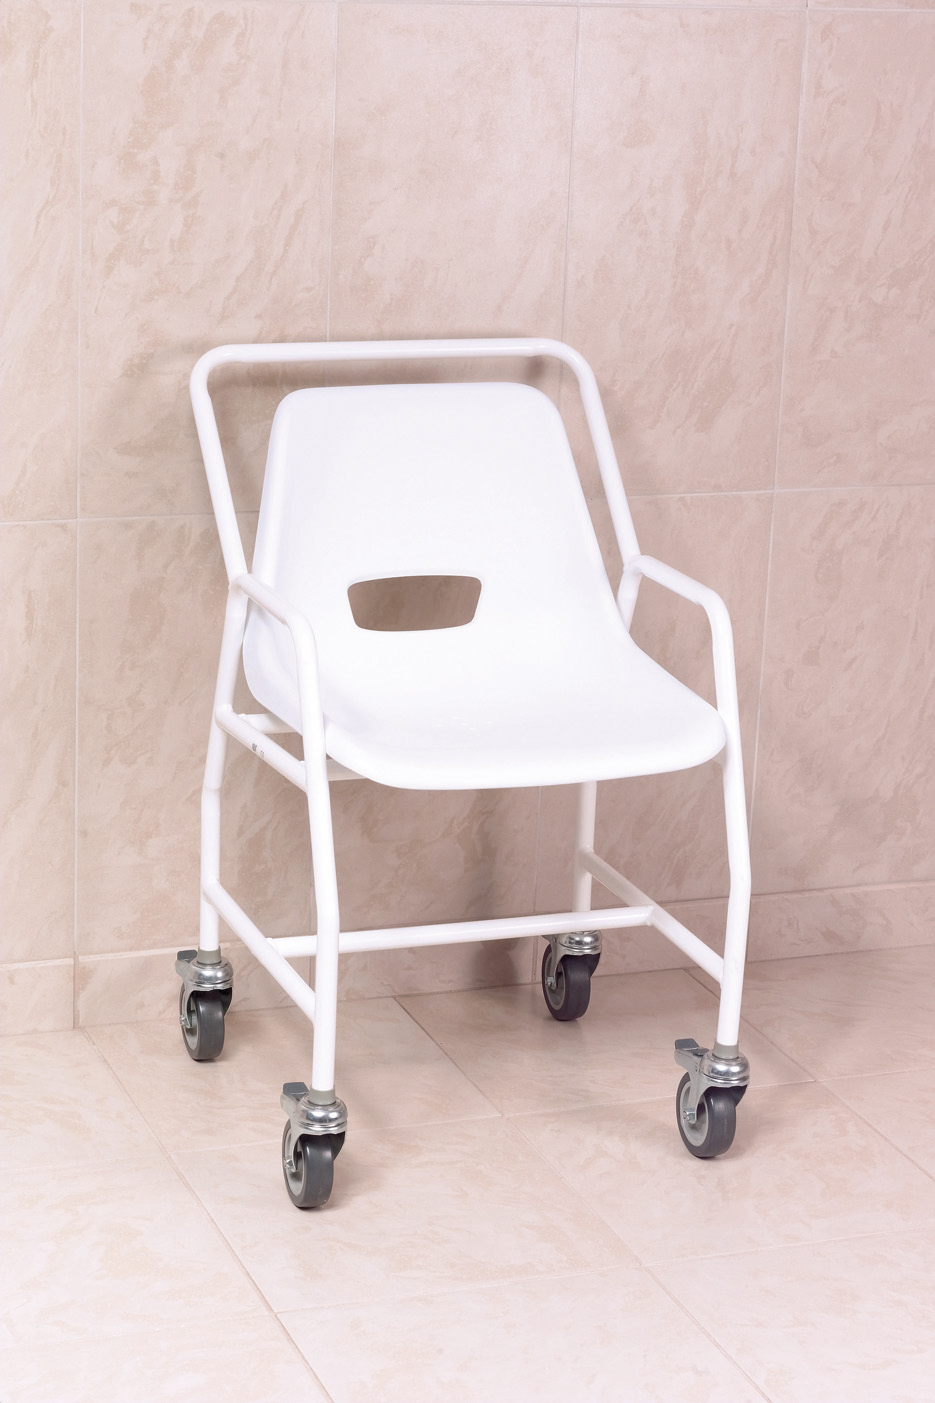 Shower chair with wheels | Adapted Living